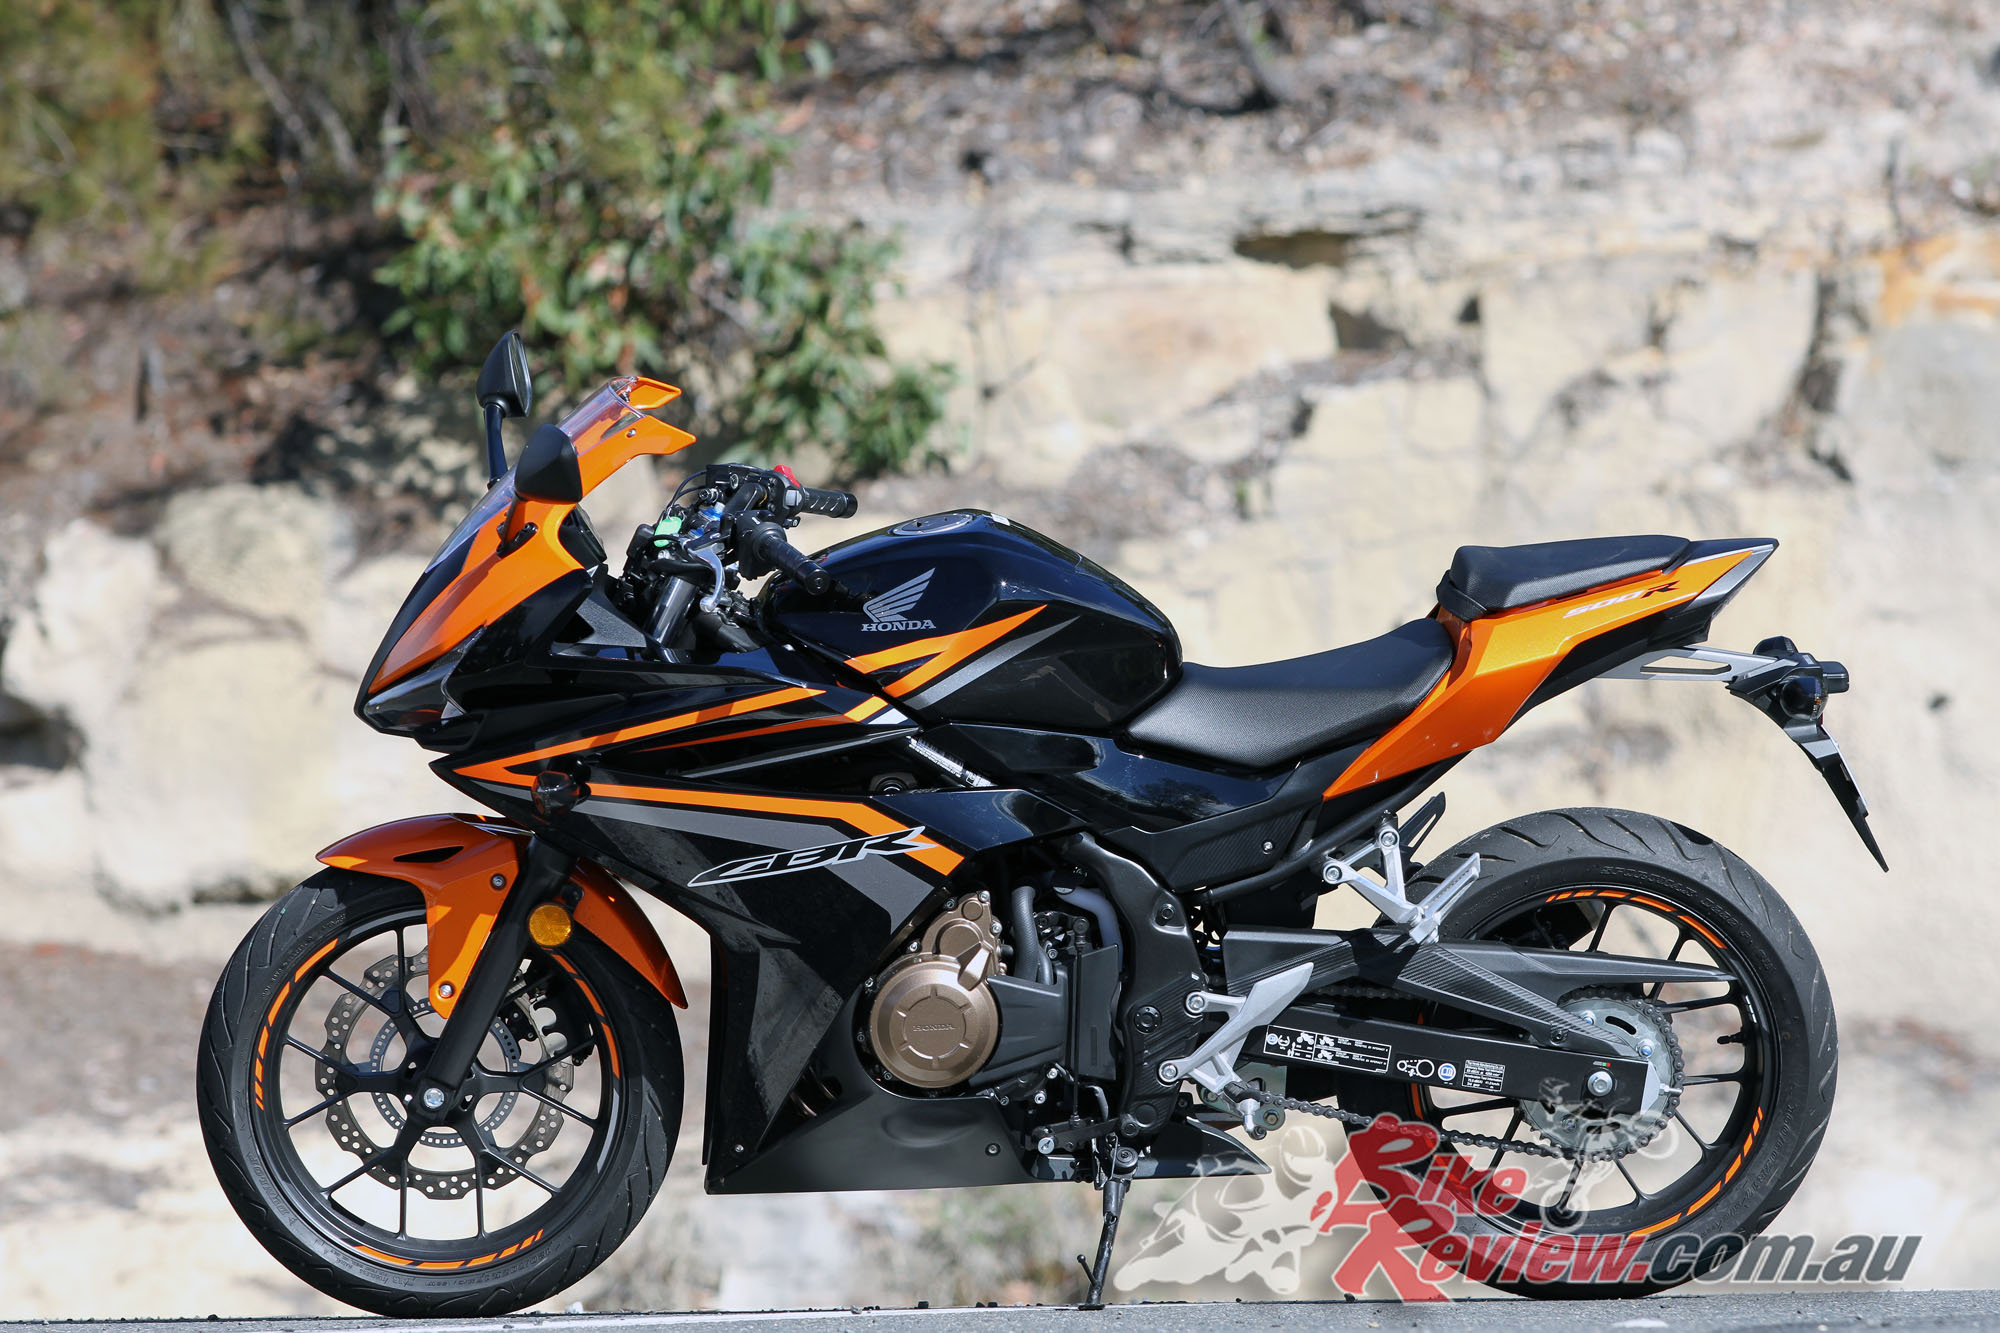 Review: 2016 Honda CBR500R - Bike Review